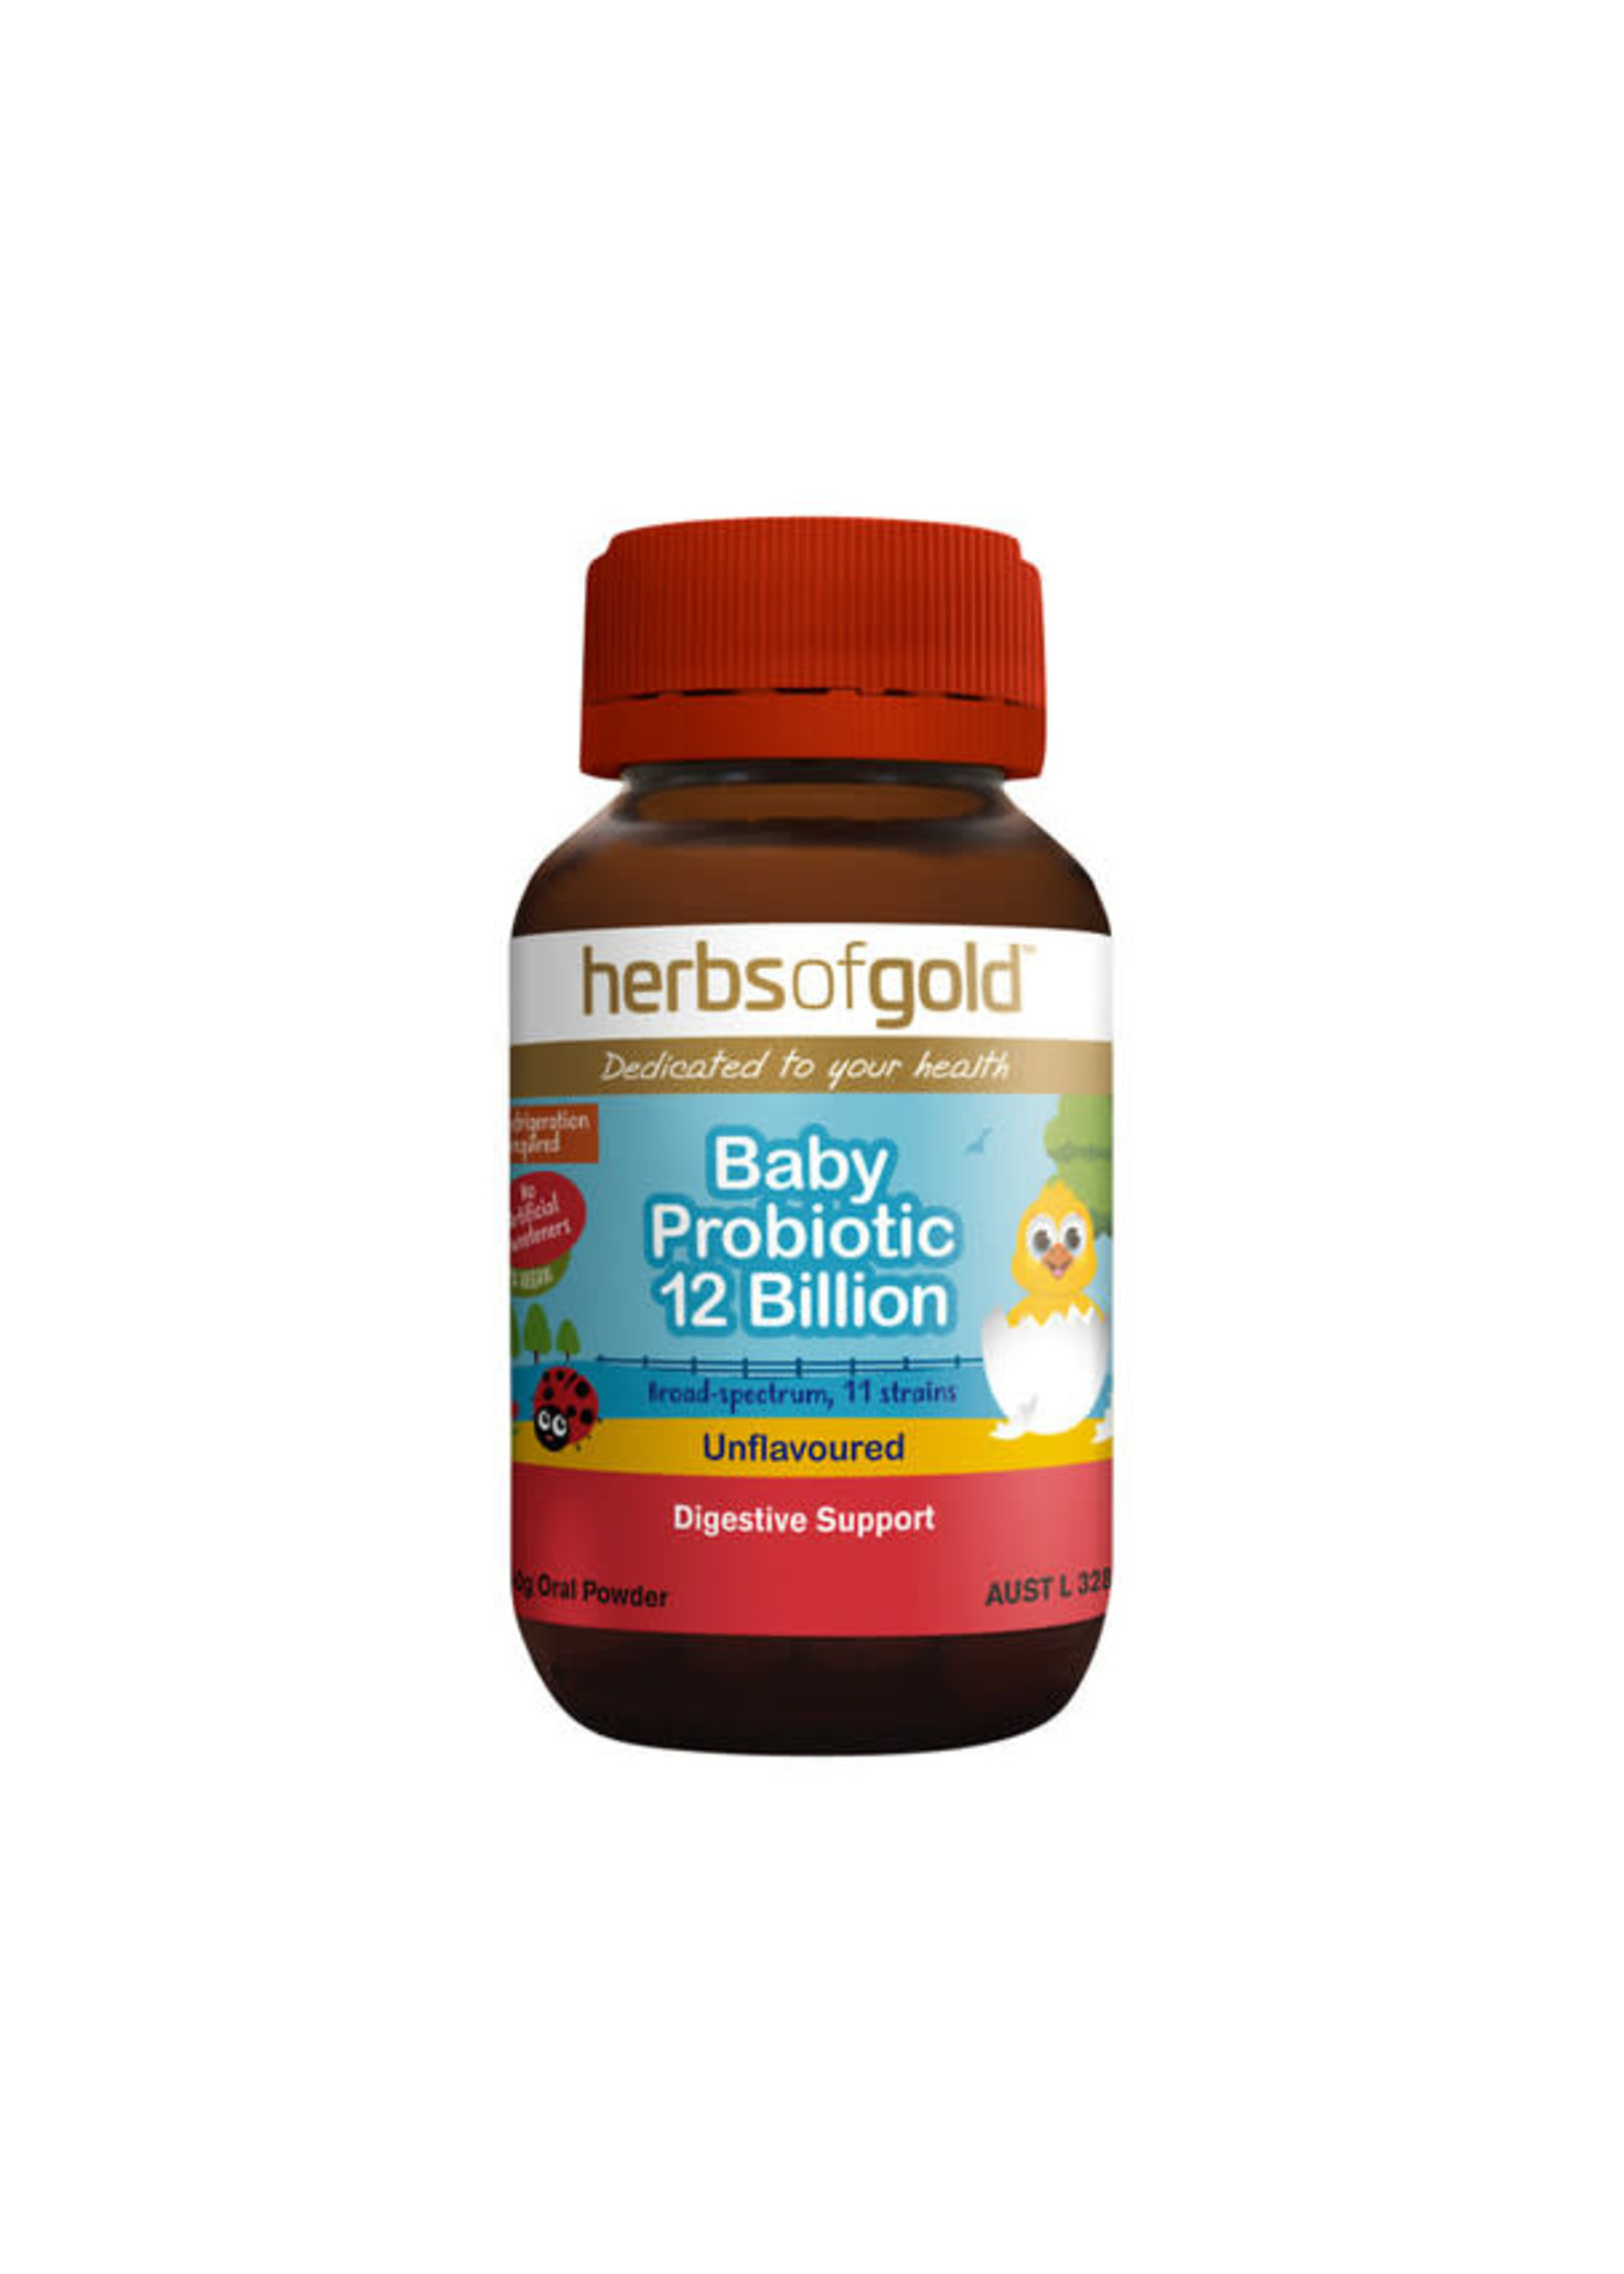 Herbs of Gold Herbs of Gold Baby Probiotic 12 Billion 50g